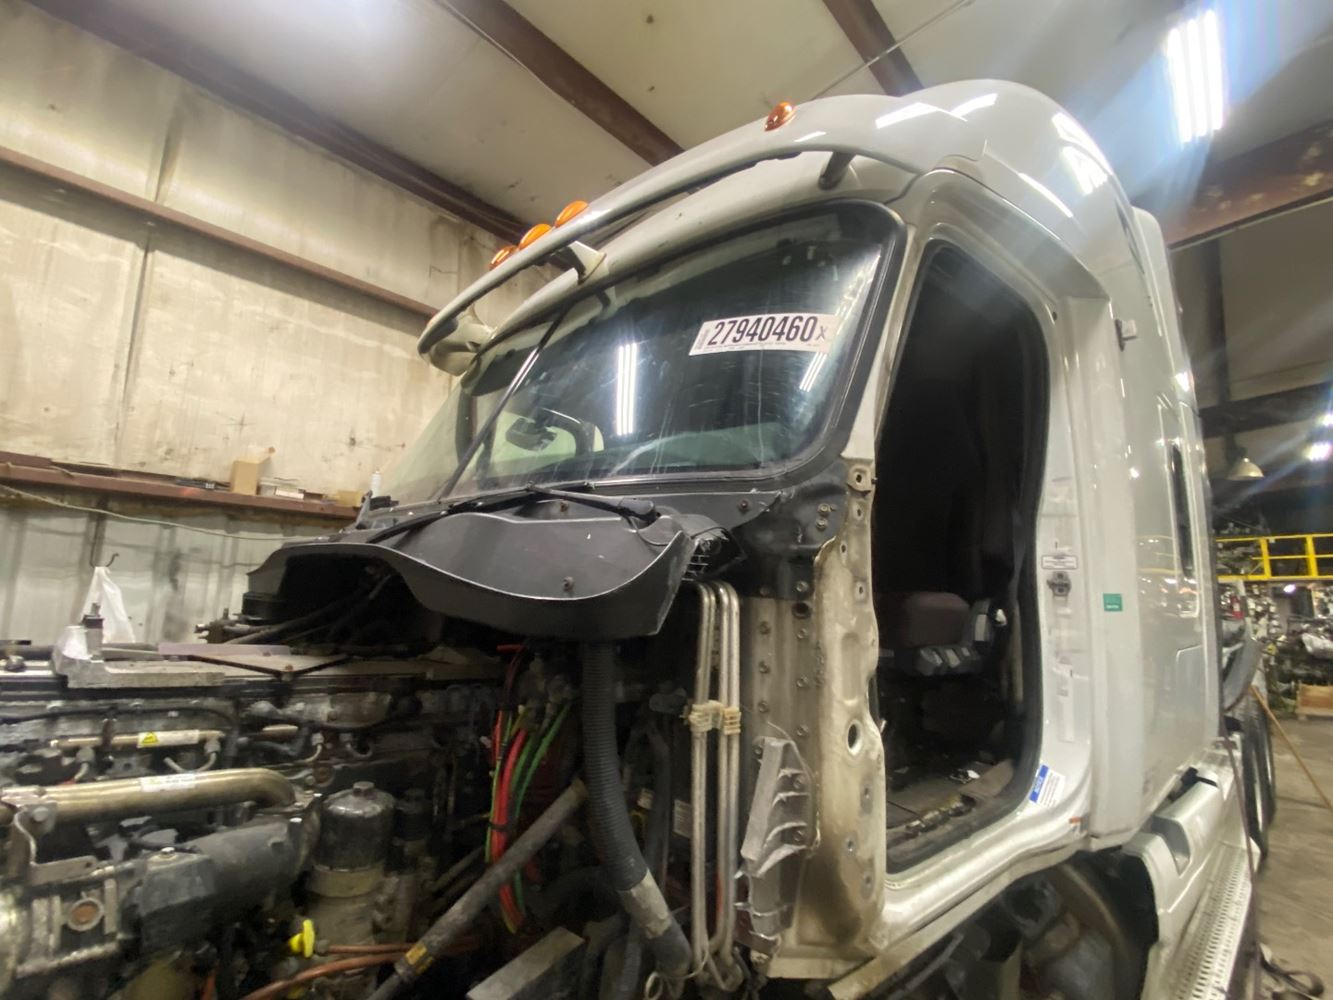 2013 FREIGHTLINER CASCADIA 125 CAB TRUCK PARTS #709290